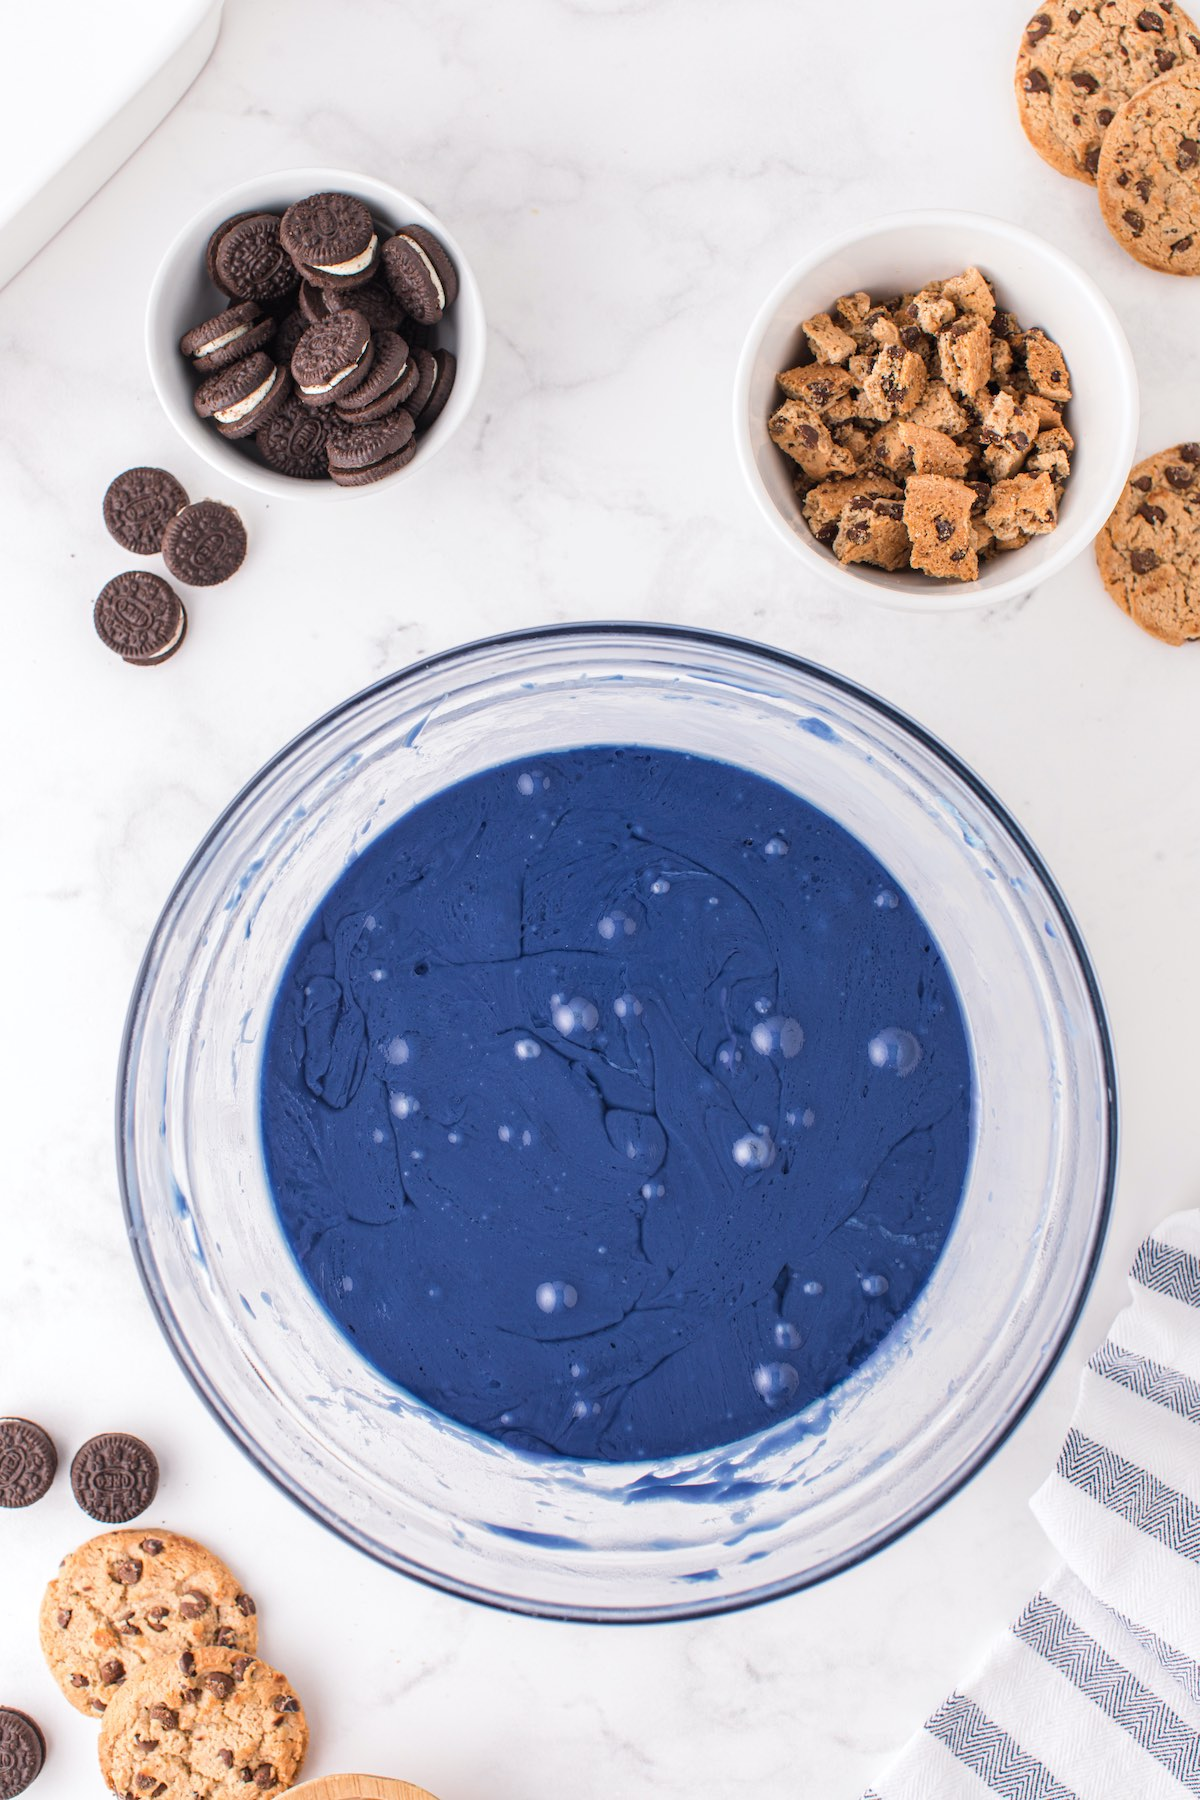 melted blue candy in a bowl